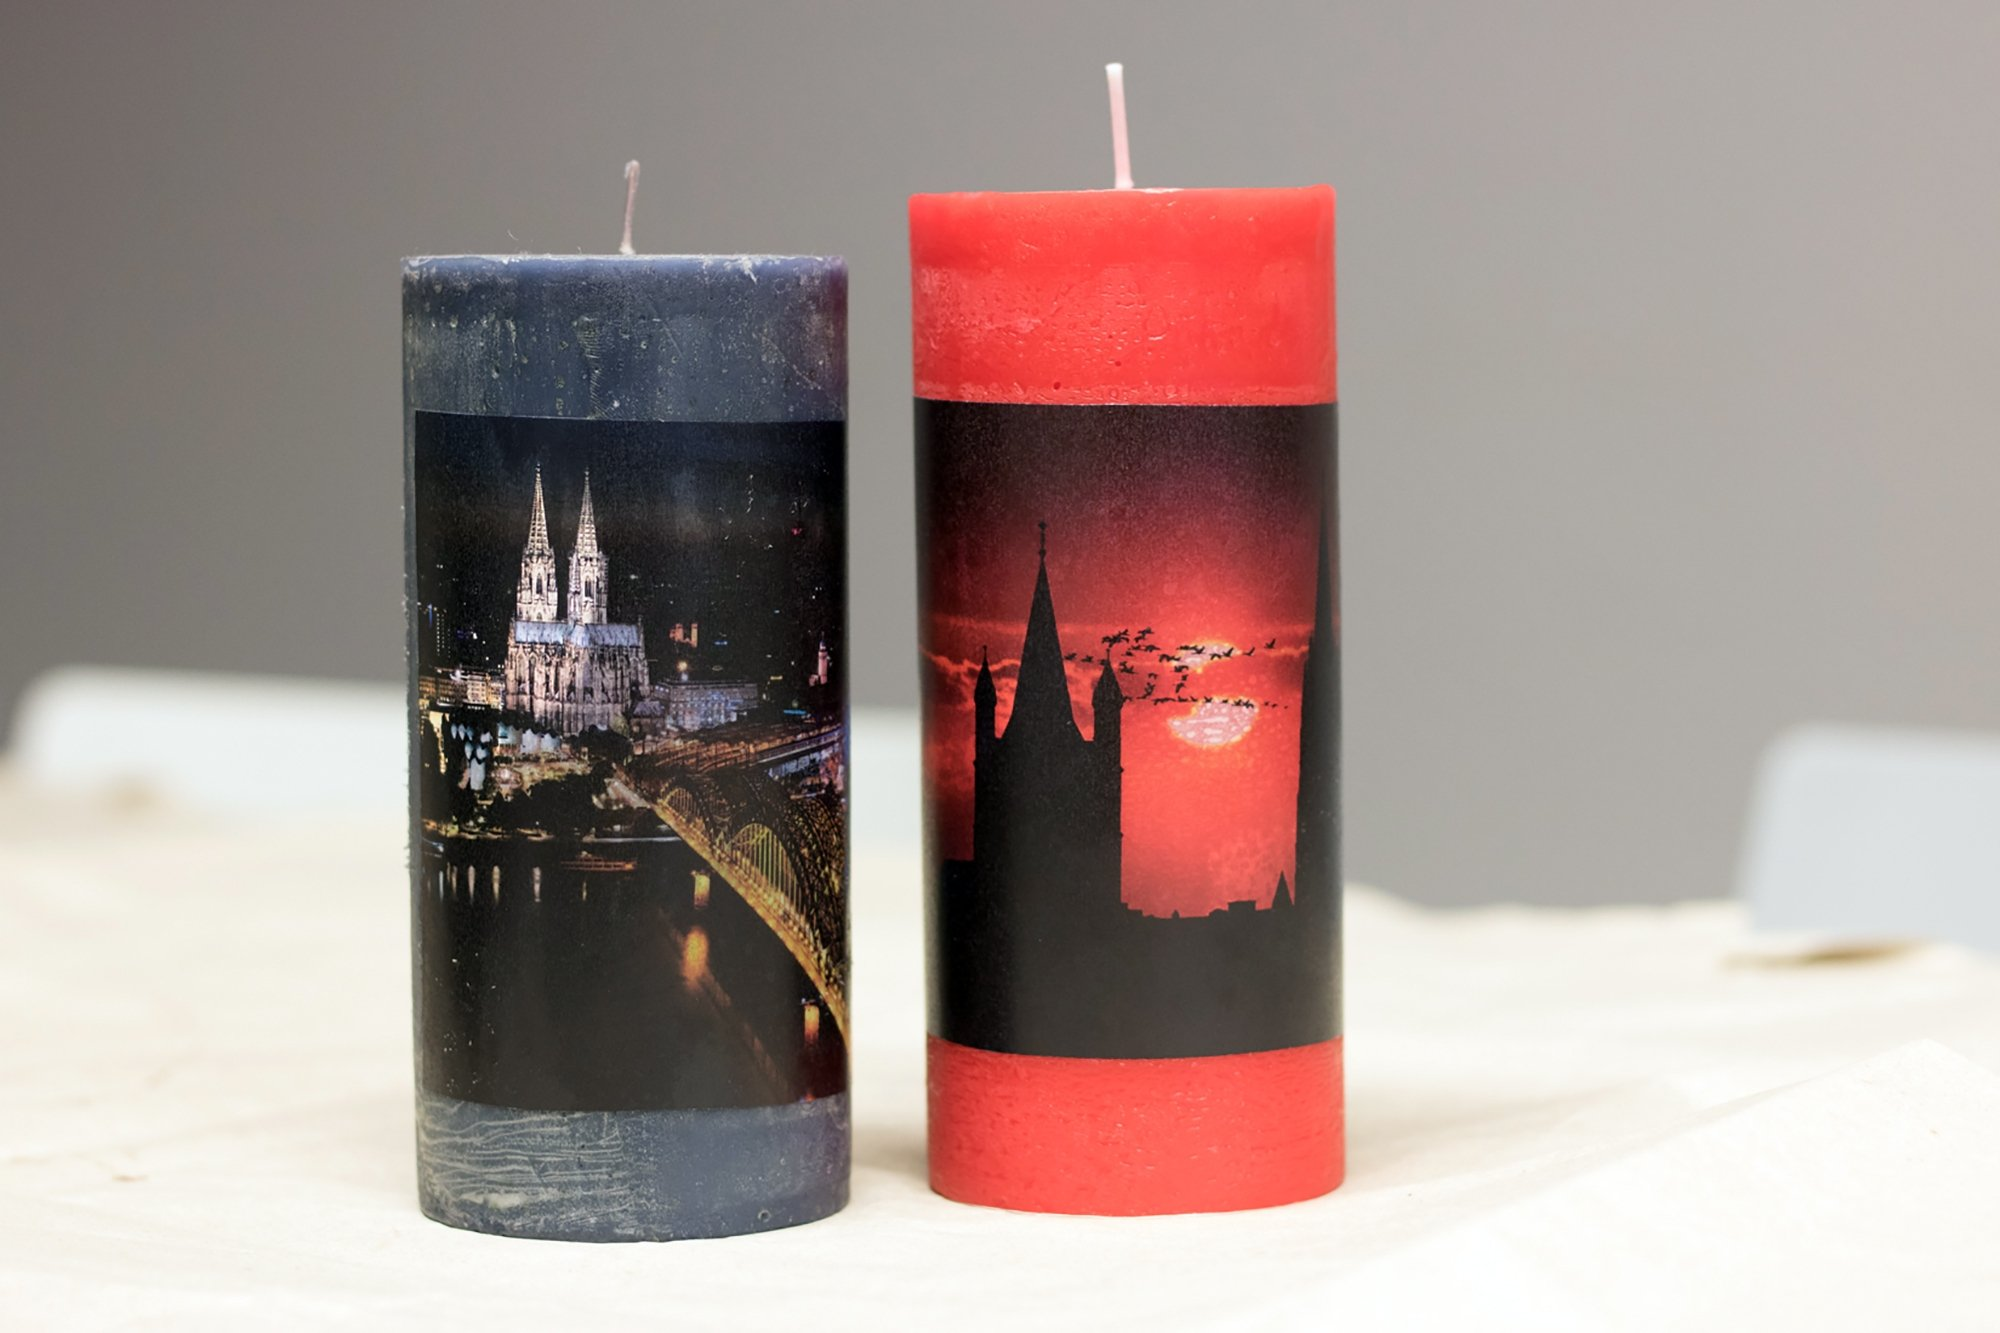 Most homeware shops will sell you candles with a print on them, but making them yourself with your own photos is surprisingly easy. (diy-academy.eu/ DPA Photo)